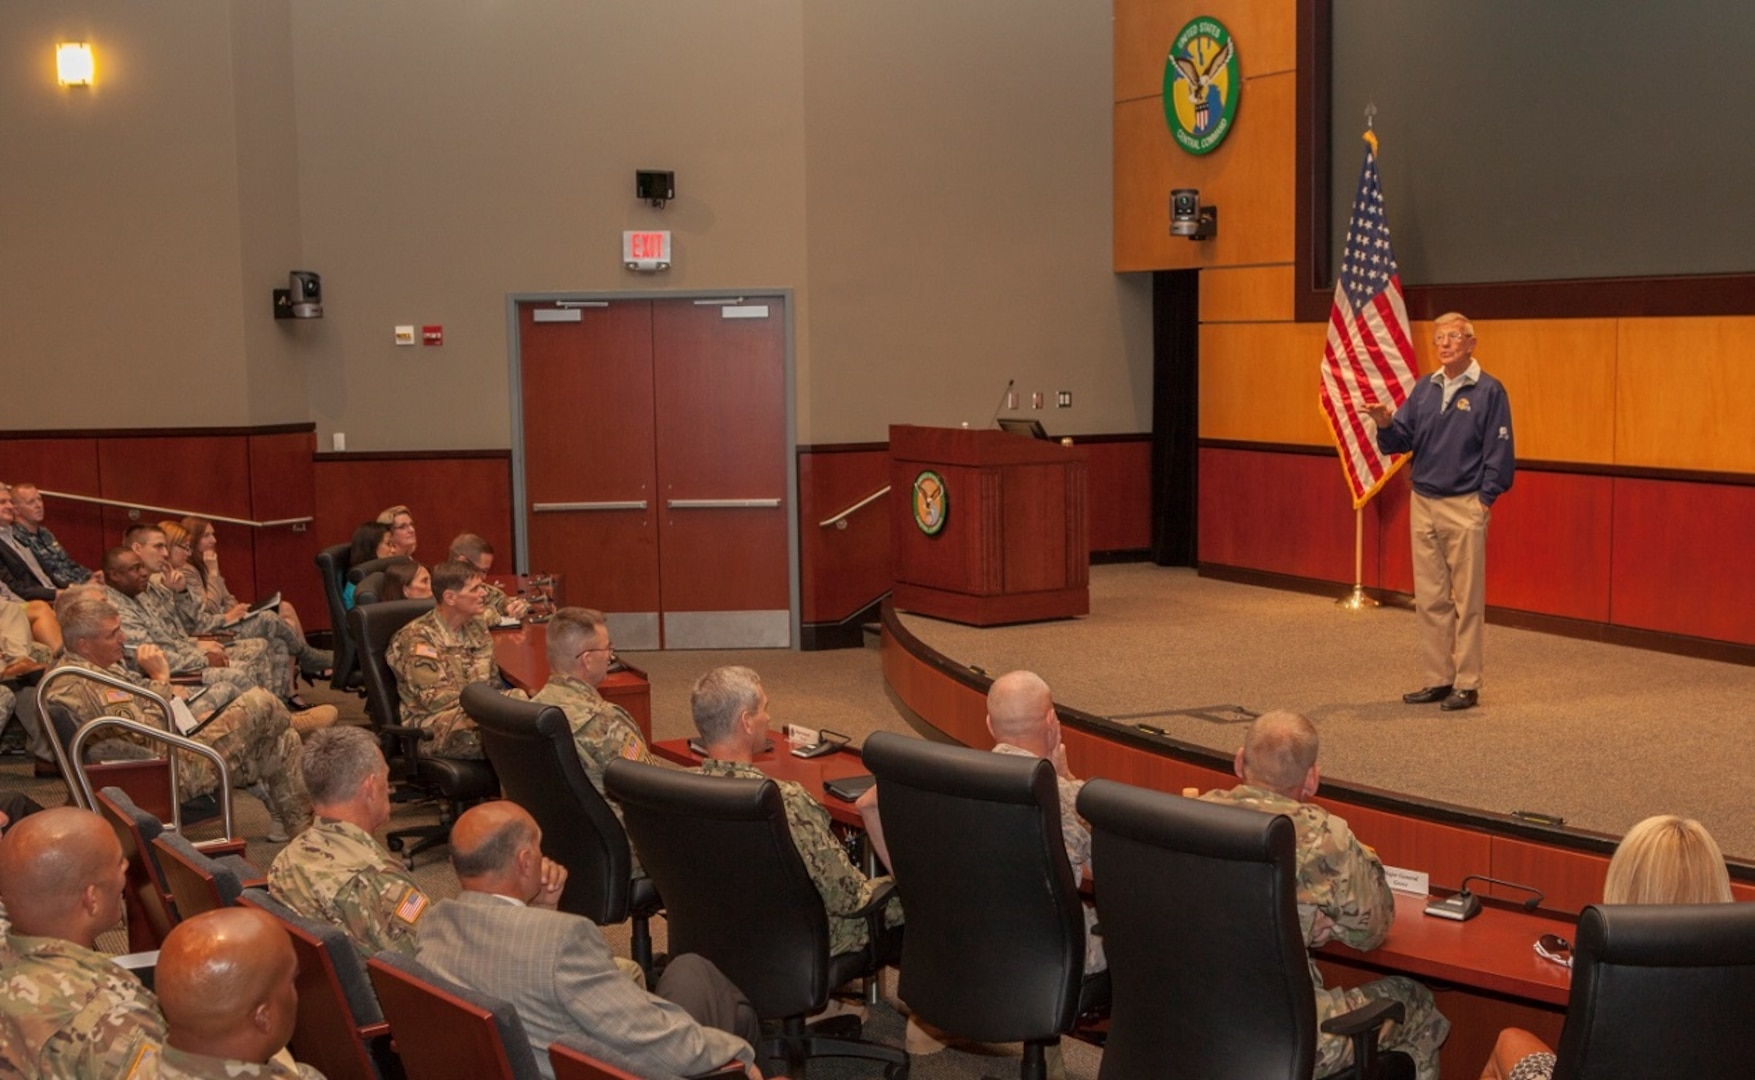 Retired Hall of Fame football coach Lou Holtz gives a motivational speech to service members assigned to U.S. Central Command. Holtz, 79, achieved notoriety for his time coaching at the University of Notre Dame and the University of South Carolina. (CENTCOM photo by Sgt. Jordan Belser)